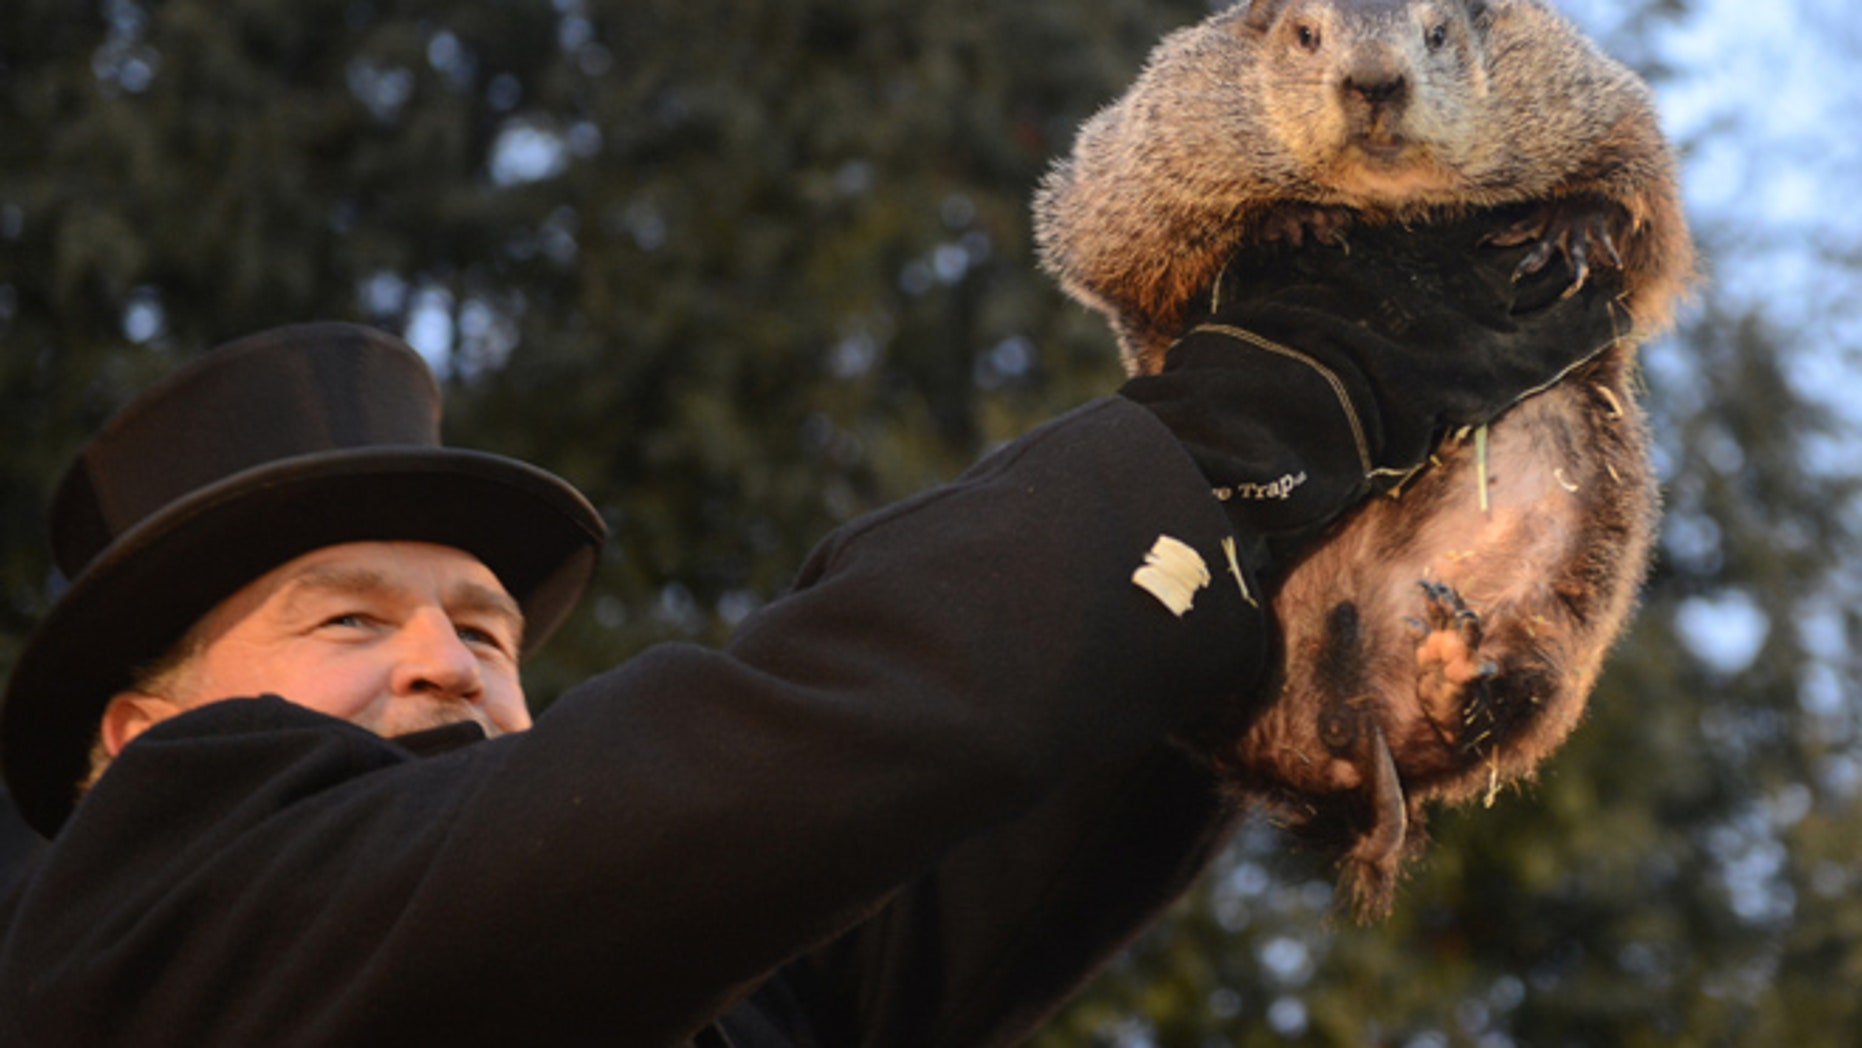 Handler John Griffiths introduces Punxsutawney Phil to the crowd at Gobbler's Knob.